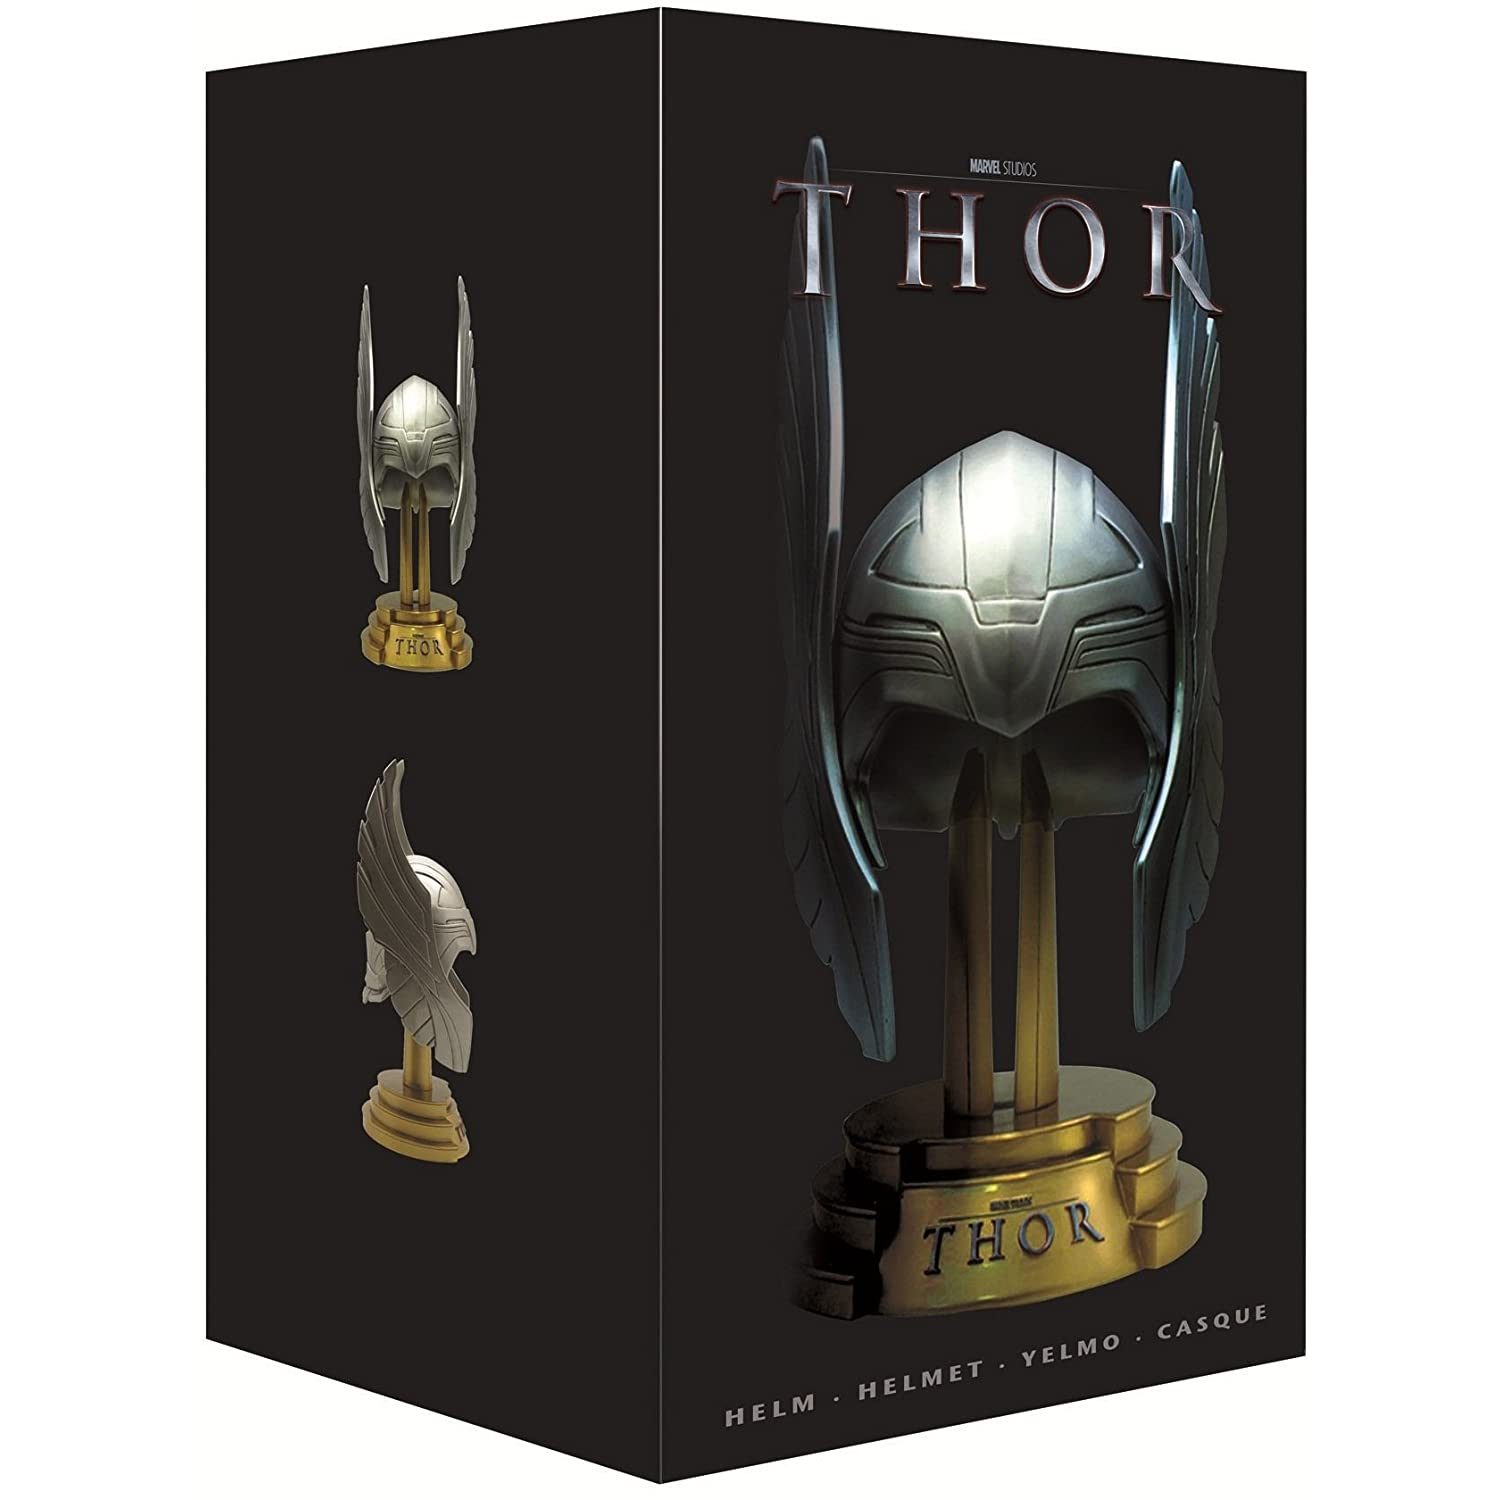 Thor (Limited Helmet Collectors Edition) - Page 2 - Blu ...